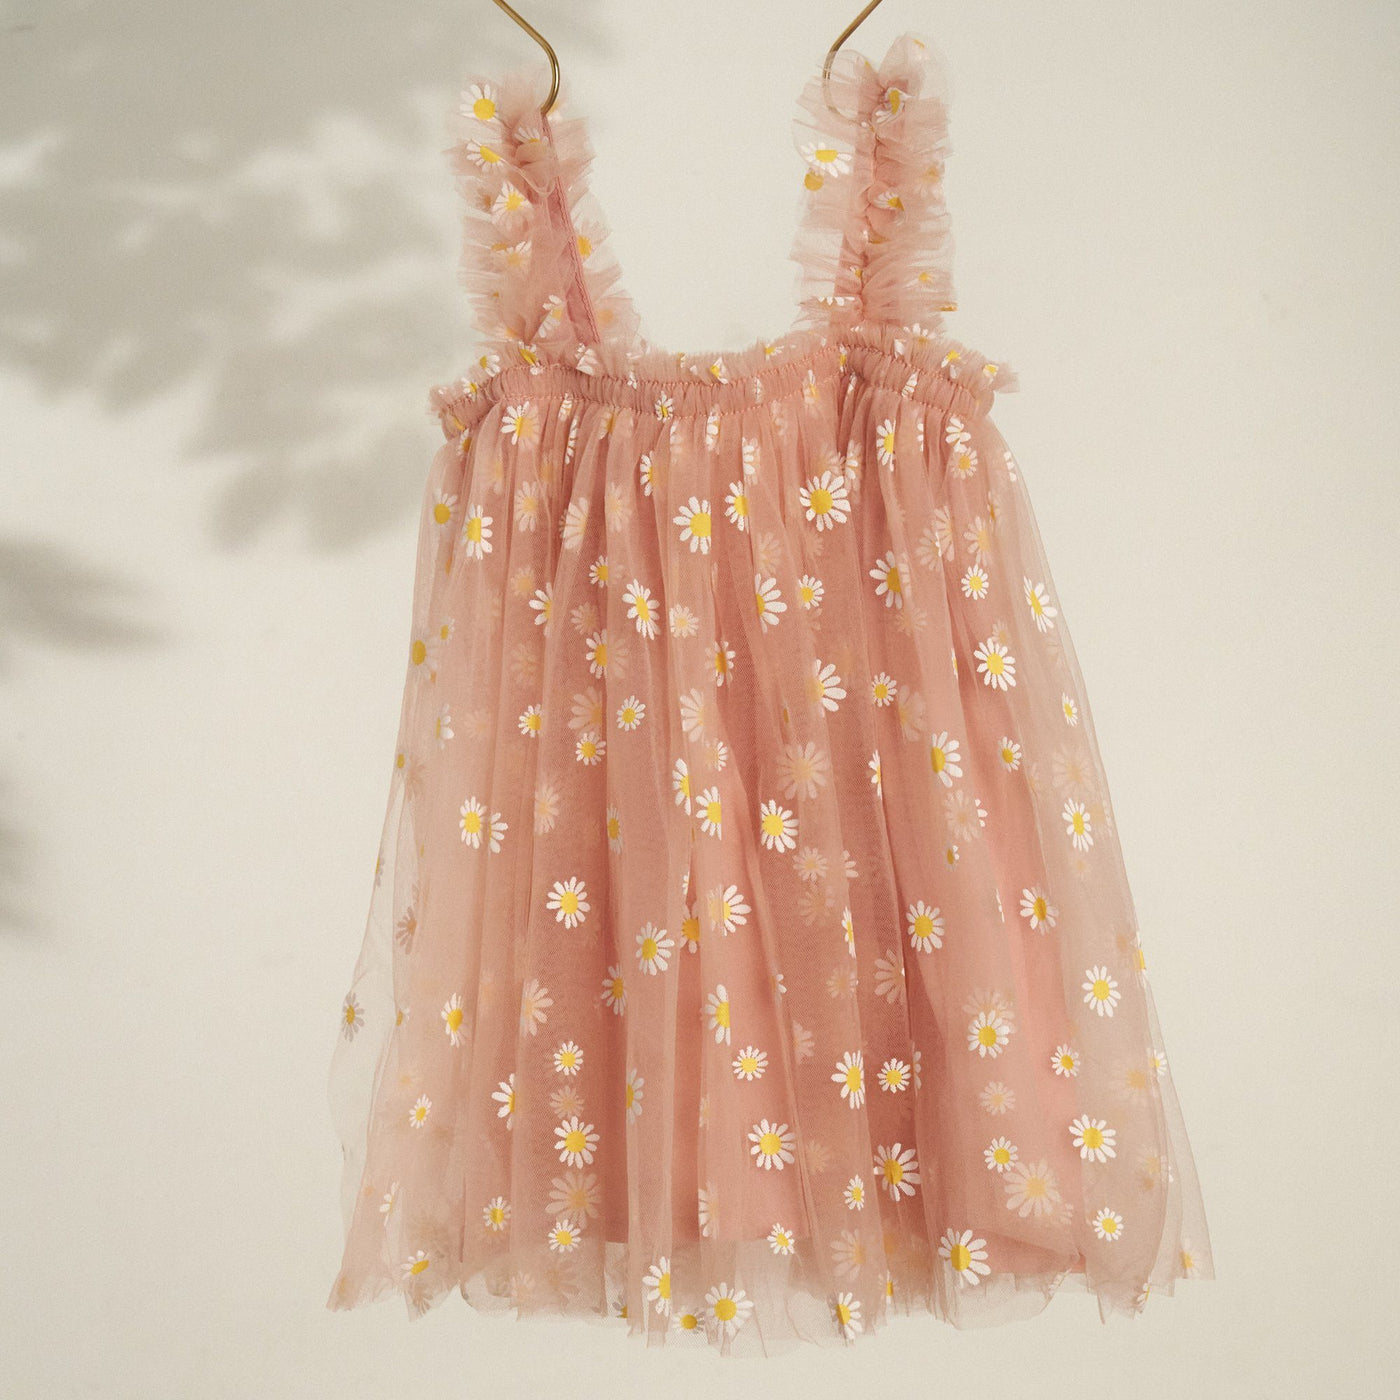 Alex + Nova Nikki Daisy Tulle Dress - Alex + Nova